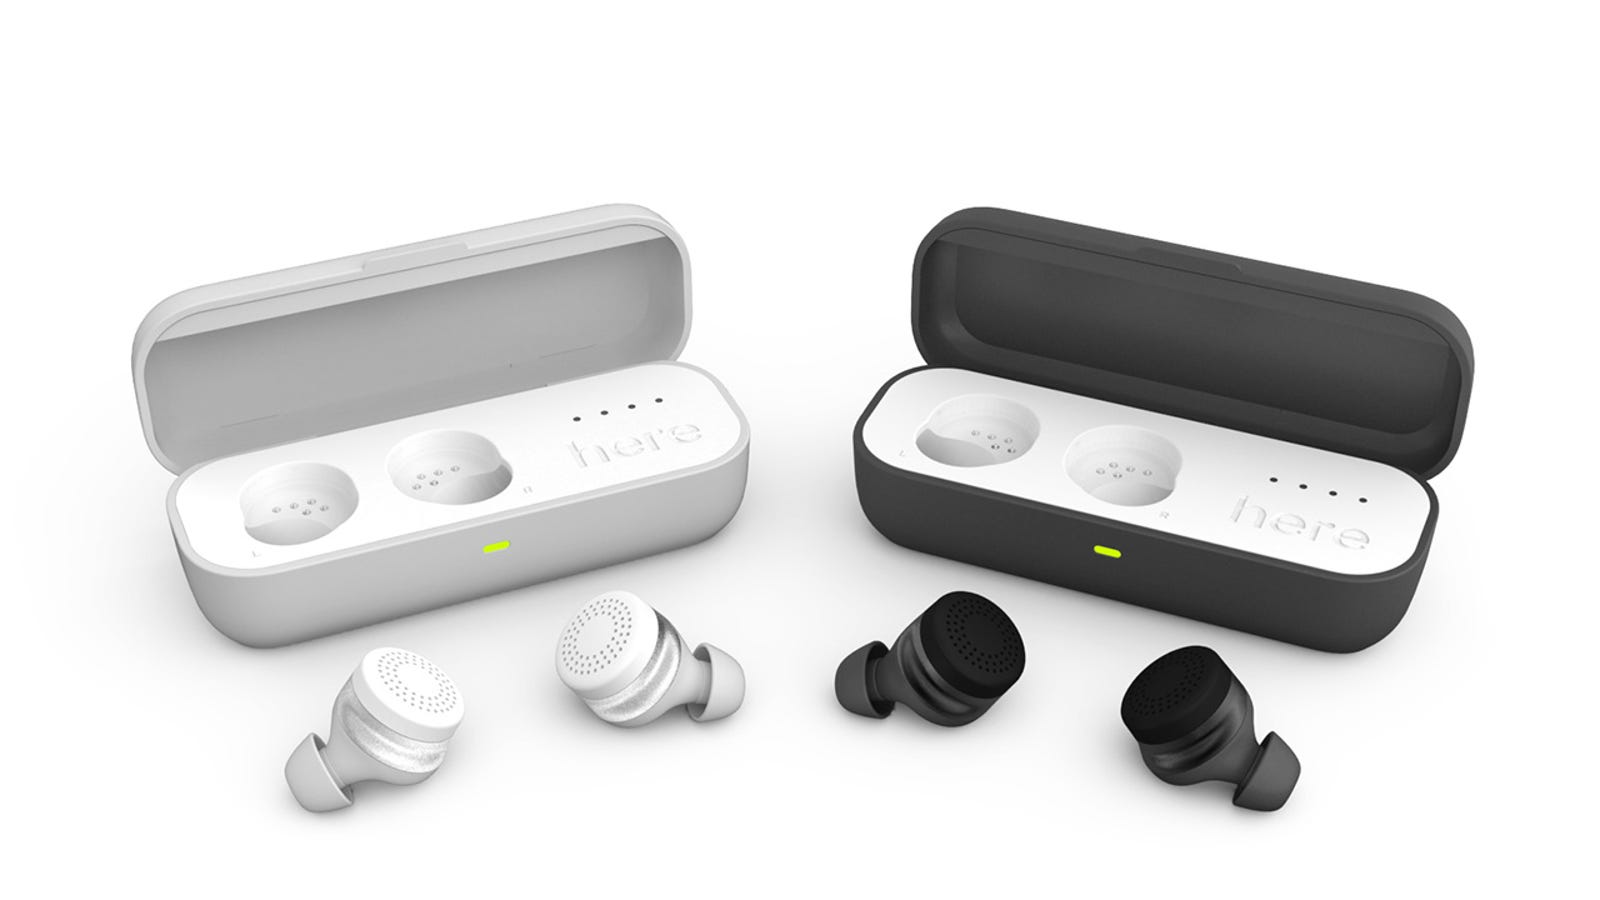 wireless headphones bluetooth langsdom - Bionic Earbuds Are Like a Smartphone You Can Leave in Your Ears Forever